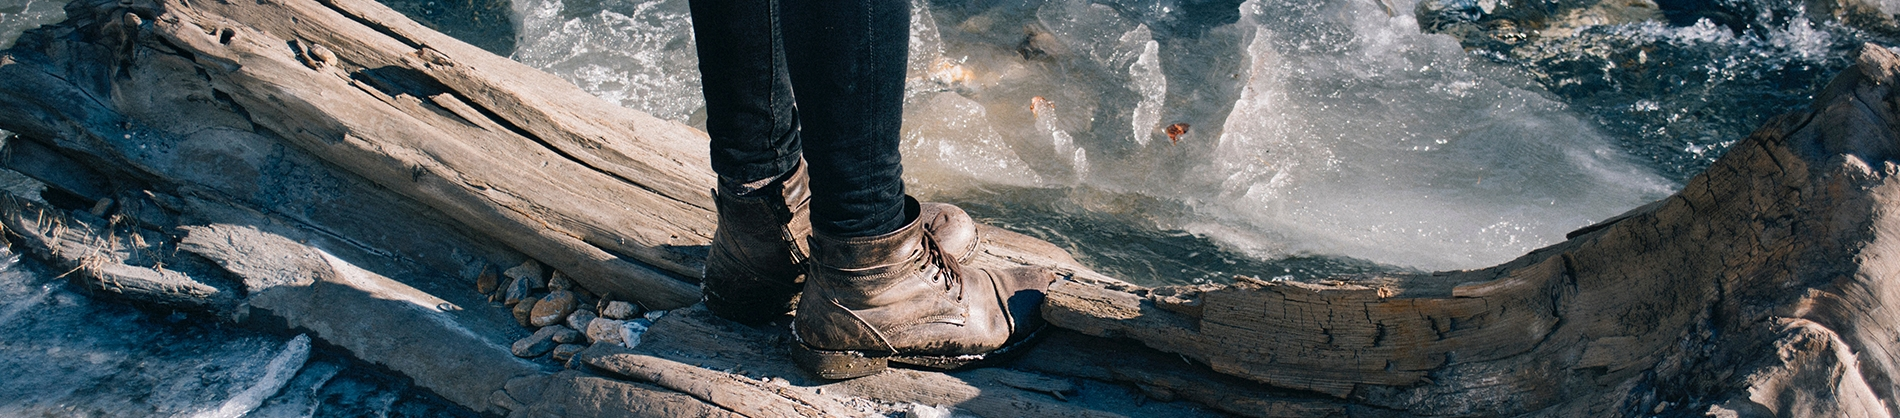 A girl in brown boots stood on a large piece of wood in the water